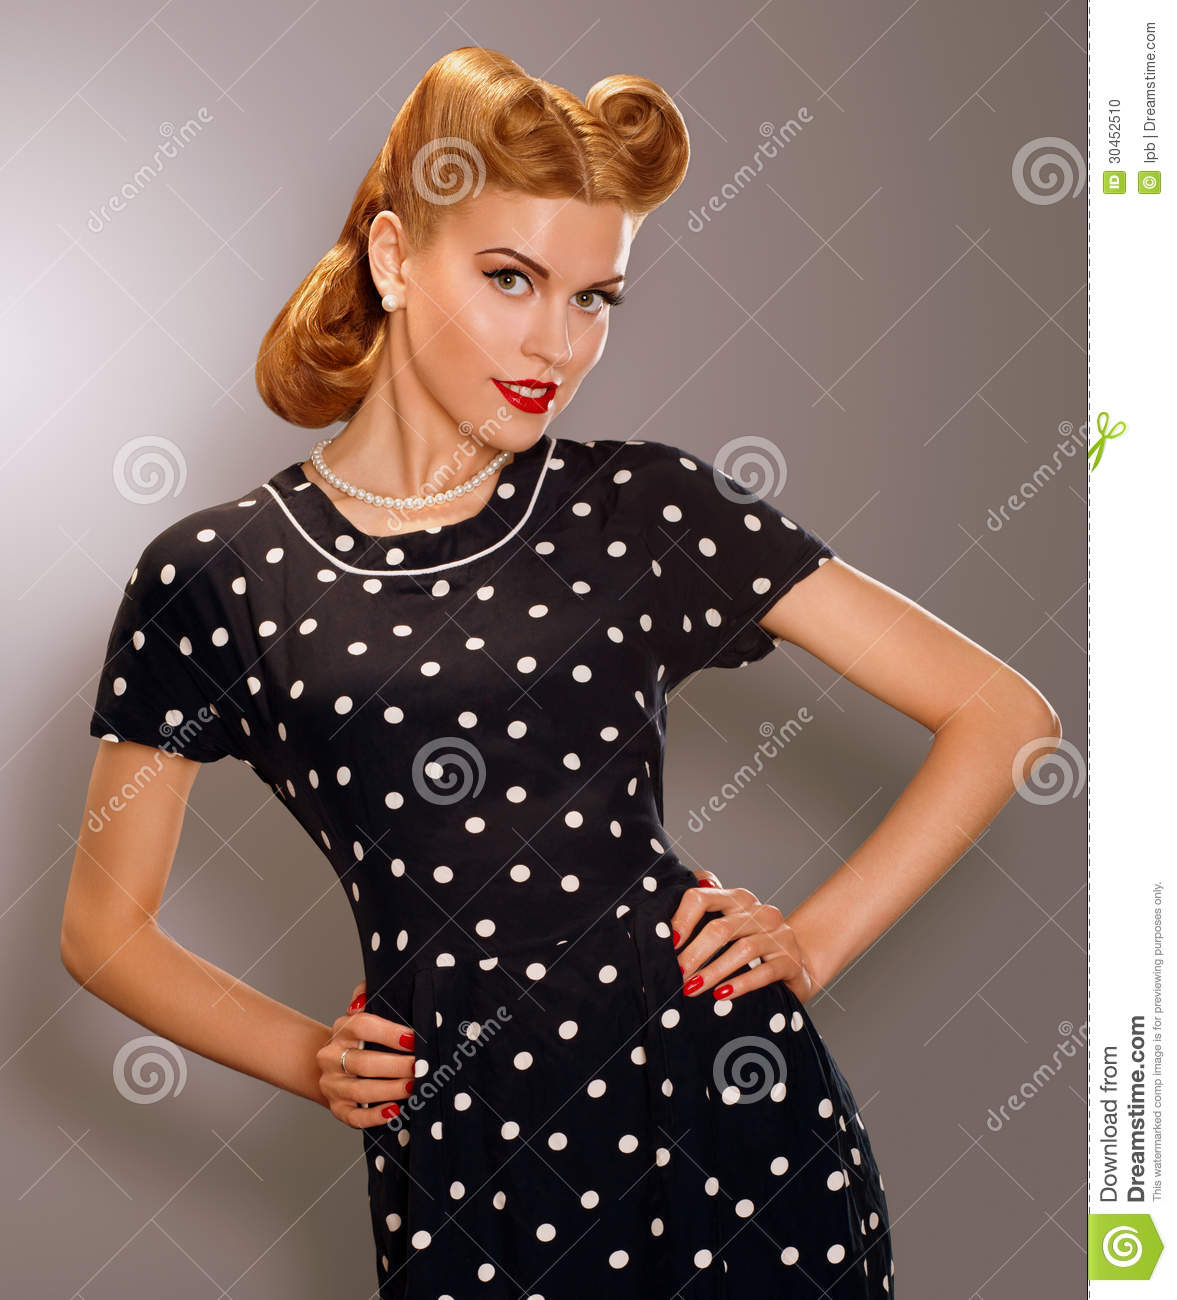 romance styled woman in blue retro polka dot dress pin up style stock photo image 30452510. Black Bedroom Furniture Sets. Home Design Ideas